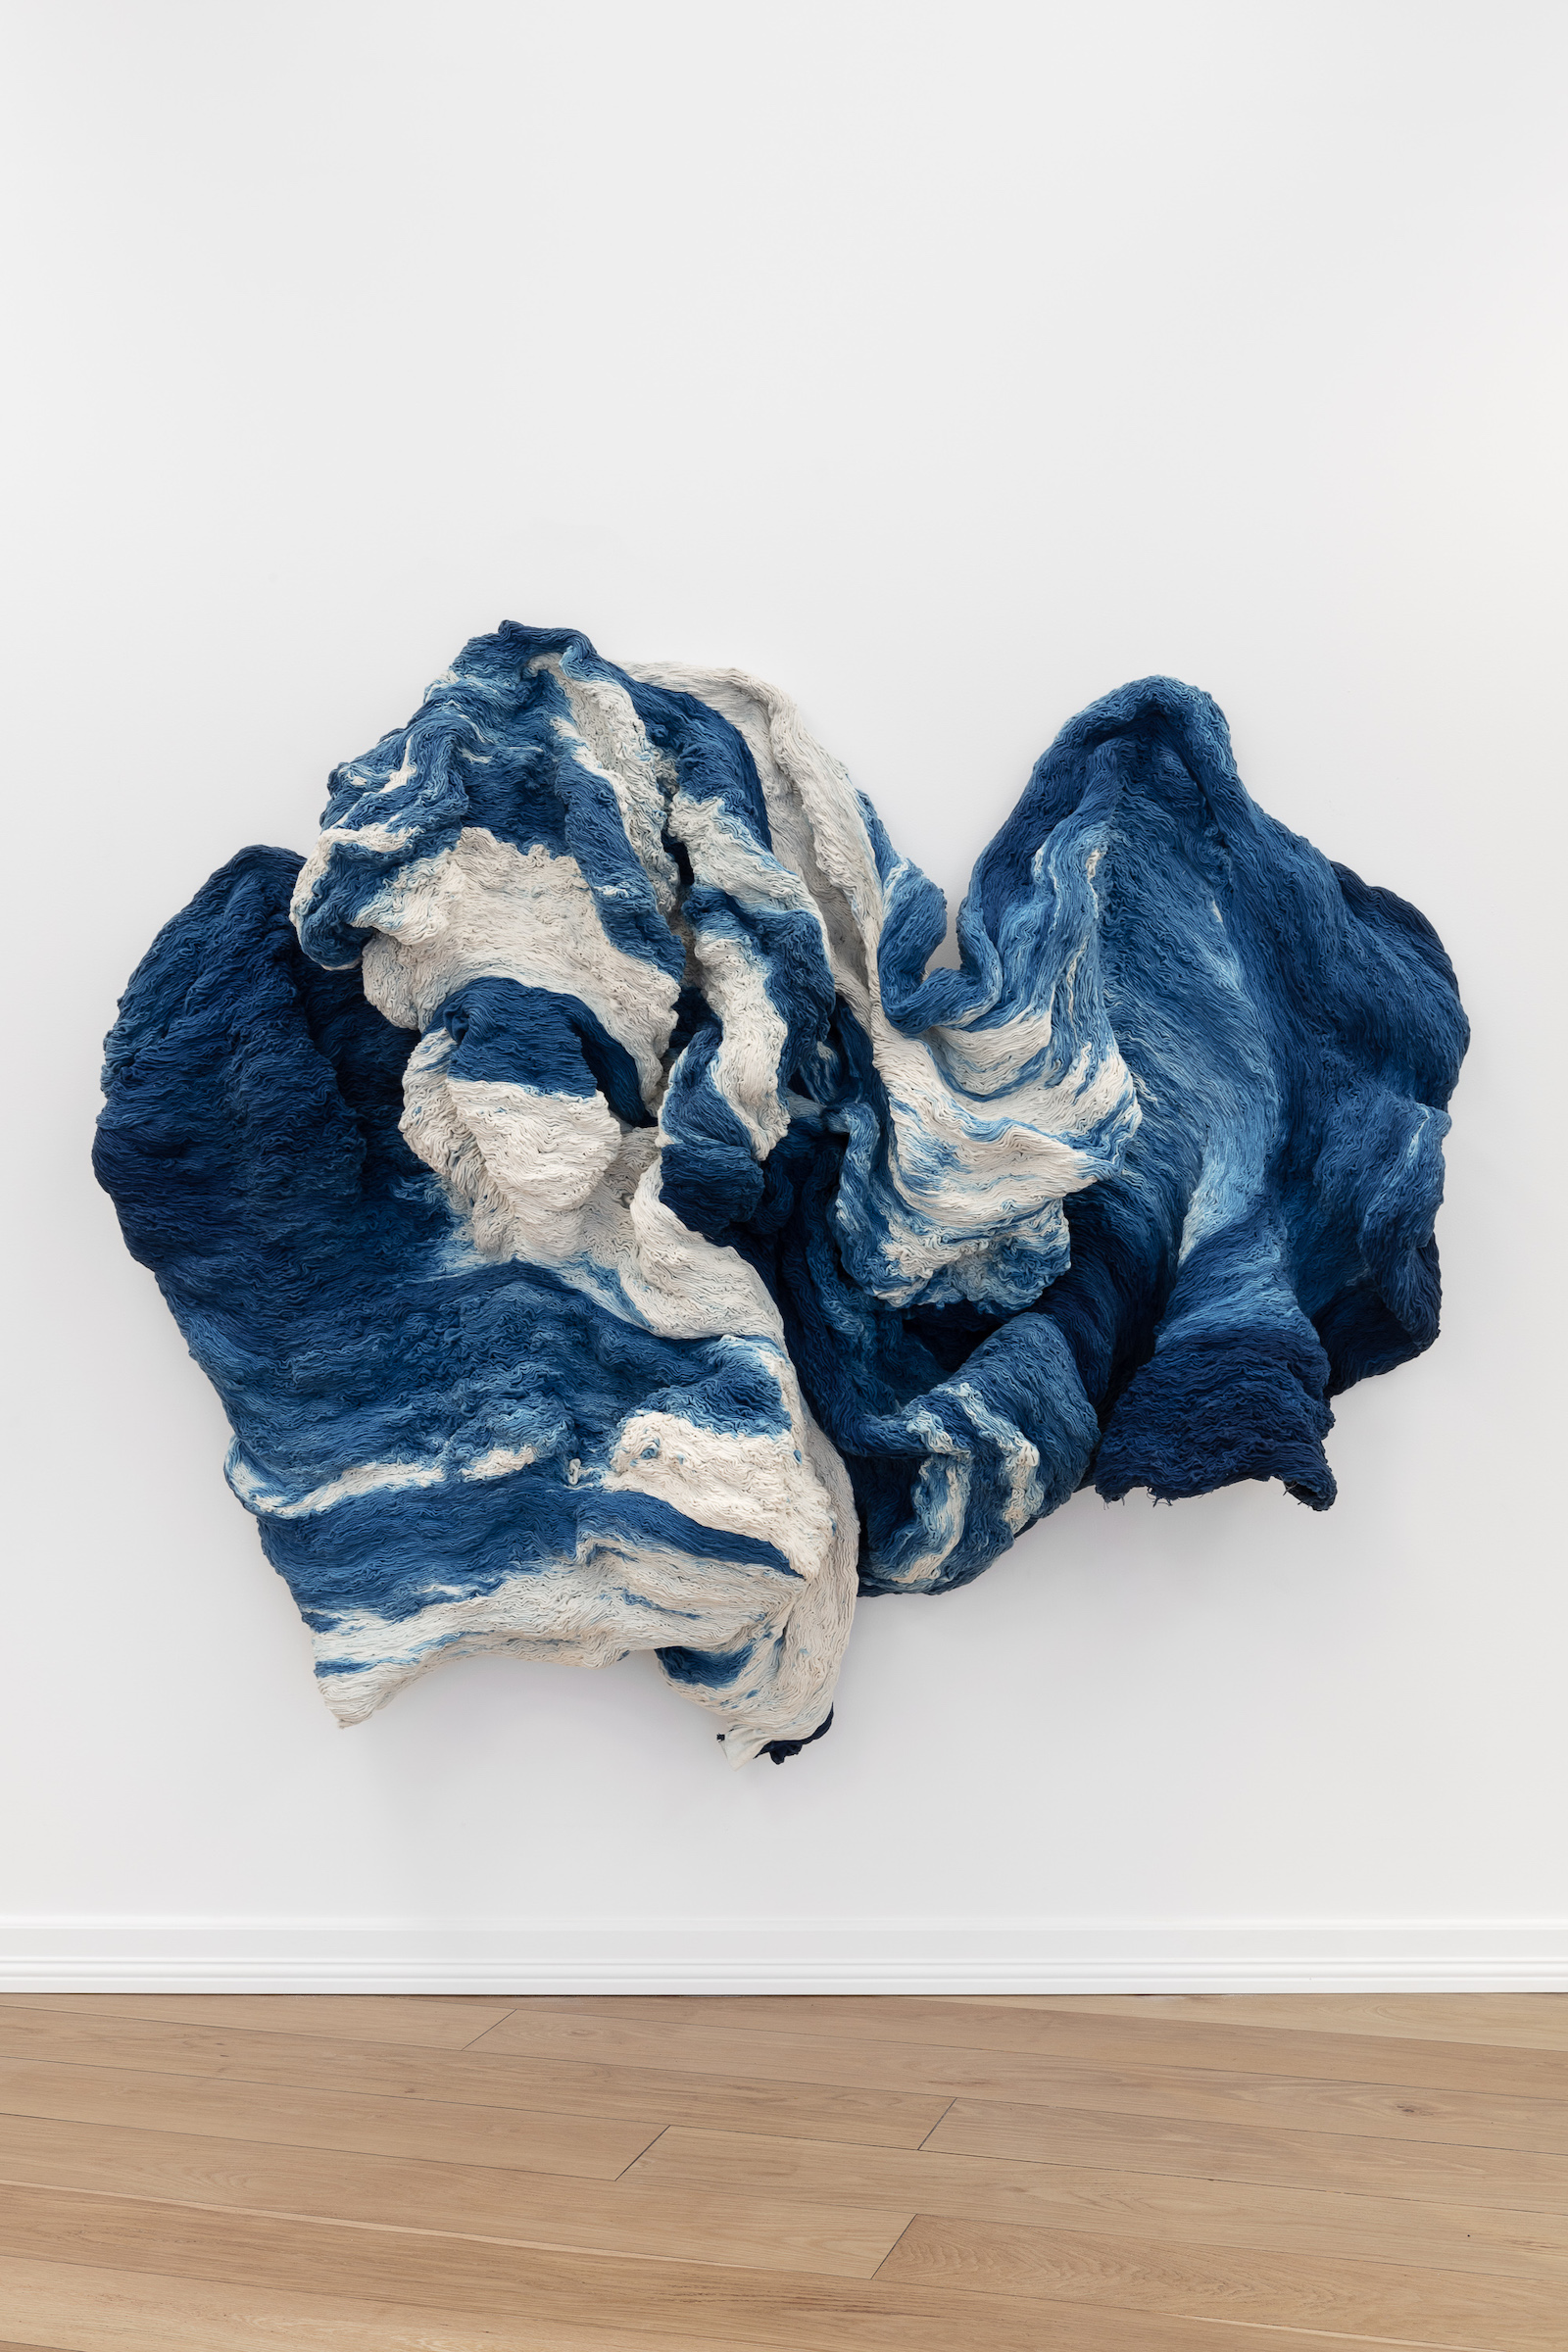 Hanne Friis, Bølge / Wave, 2018-21, cotton canvas hand dyed by synthetic indigo; hand stitched, 160 x 180 x 35 cm